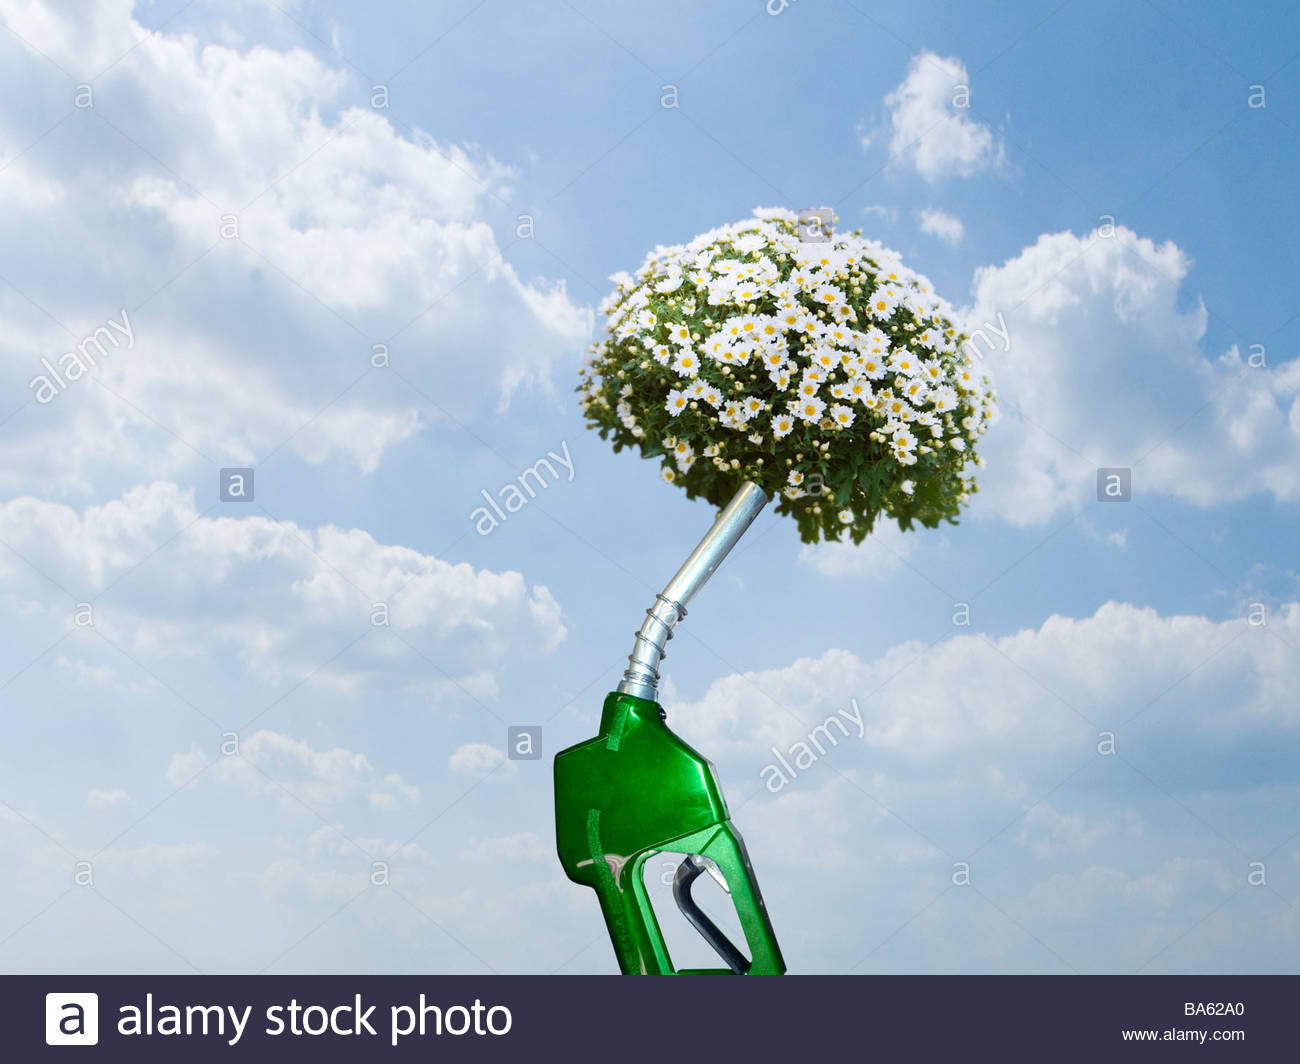 Green gas pump with blooming plant at end of nozzle - Stock Image